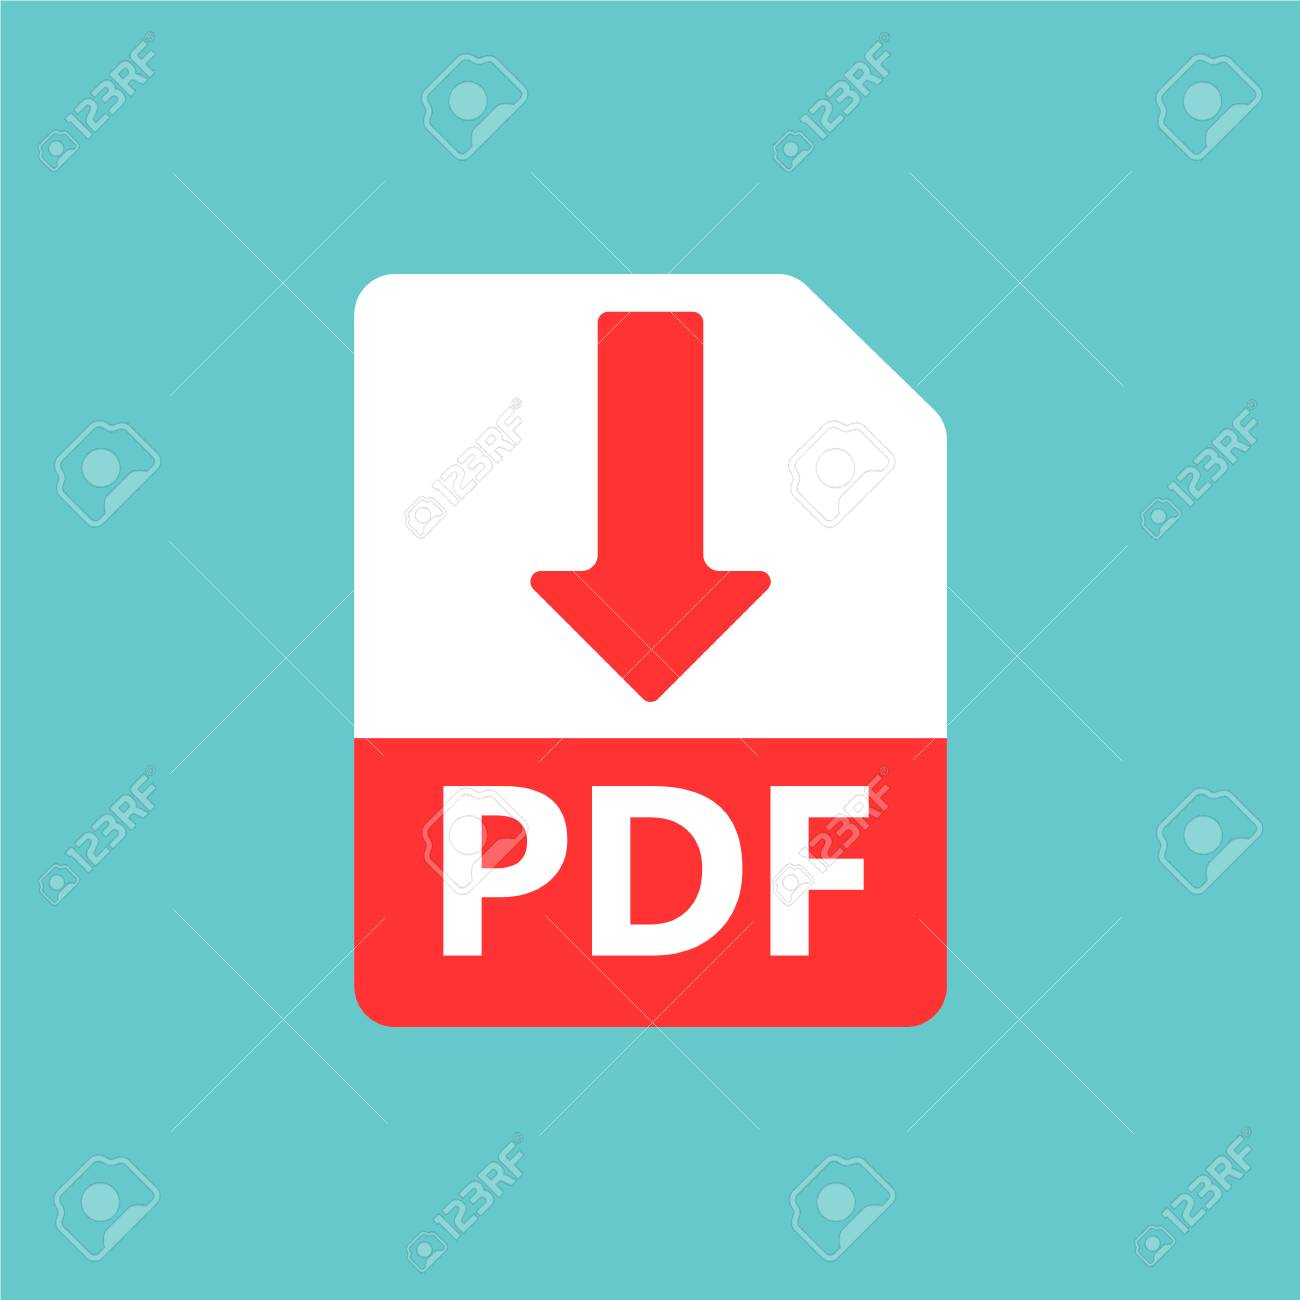 Pdf, svg, doc, jpg, psd, ai file formats. Vector icons. Editorial.